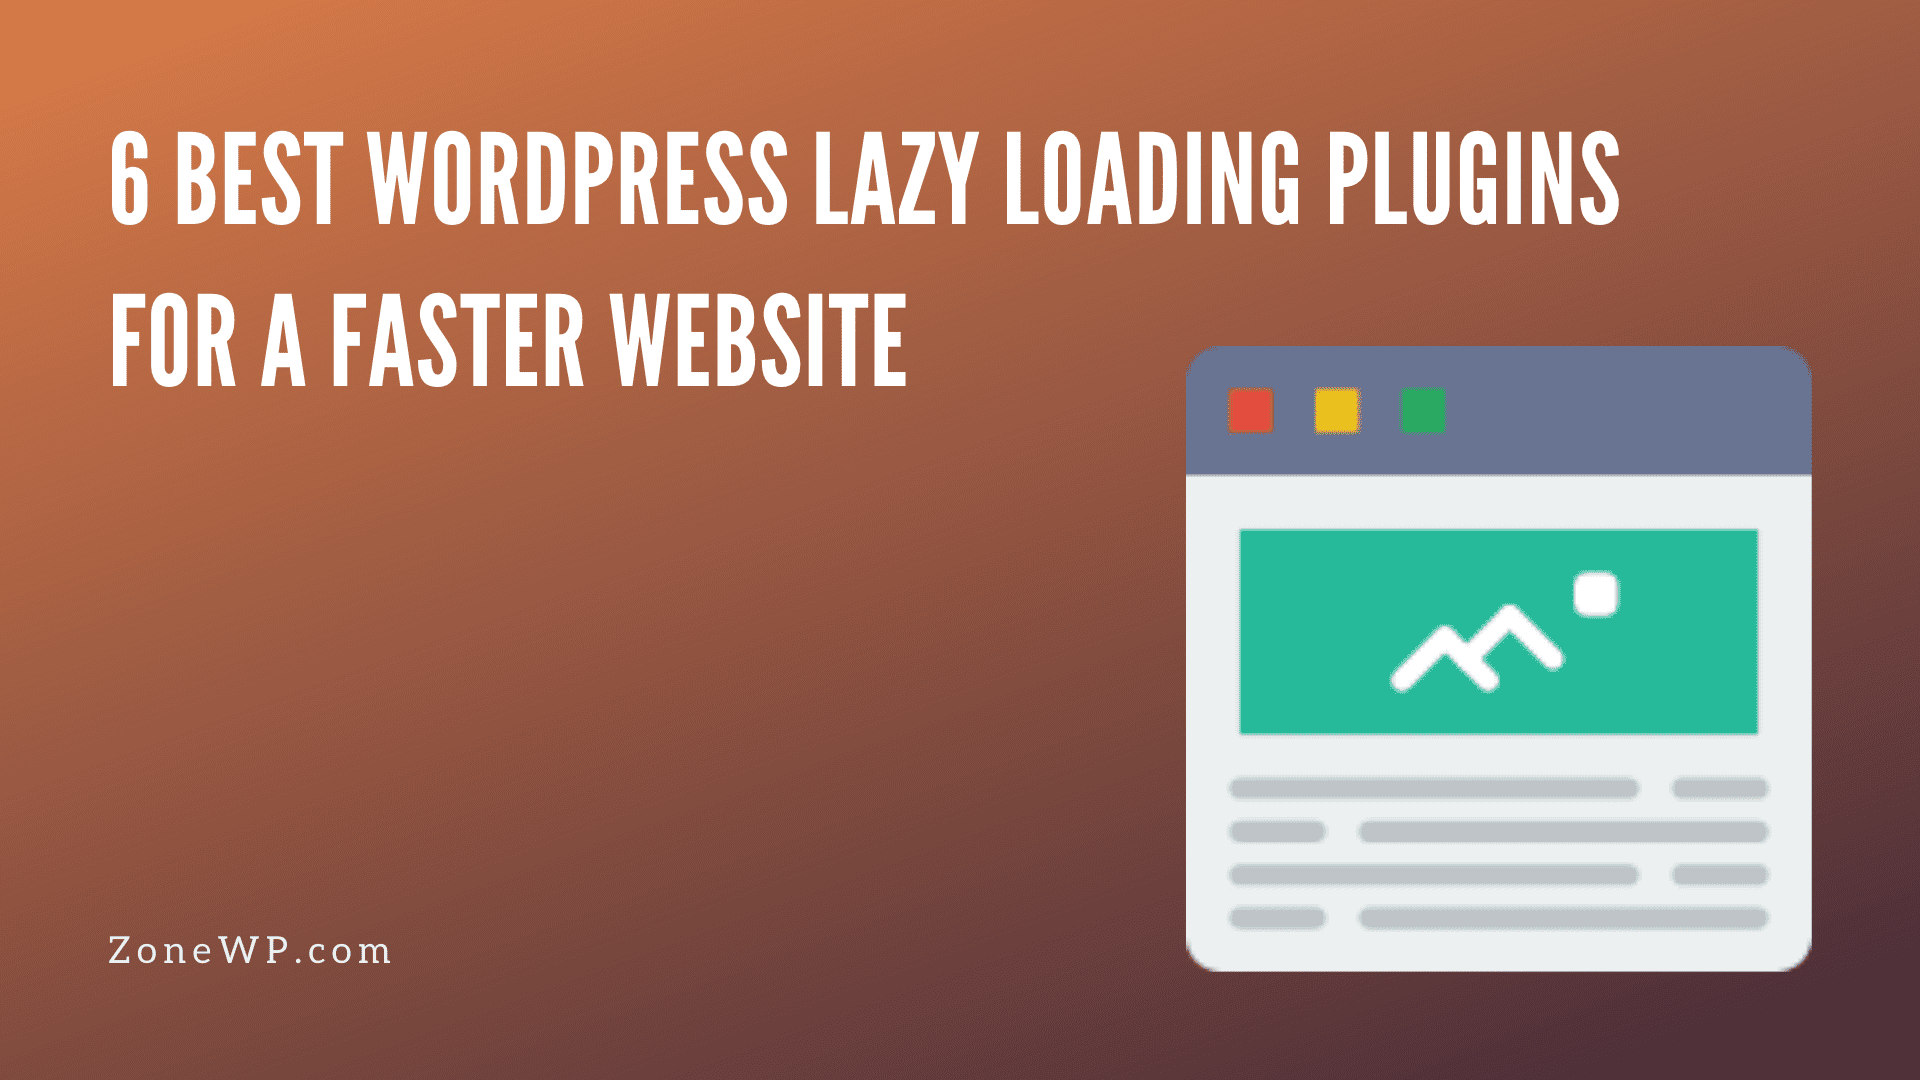 6 Best WordPress Lazy Loading Plugins for a Faster Website